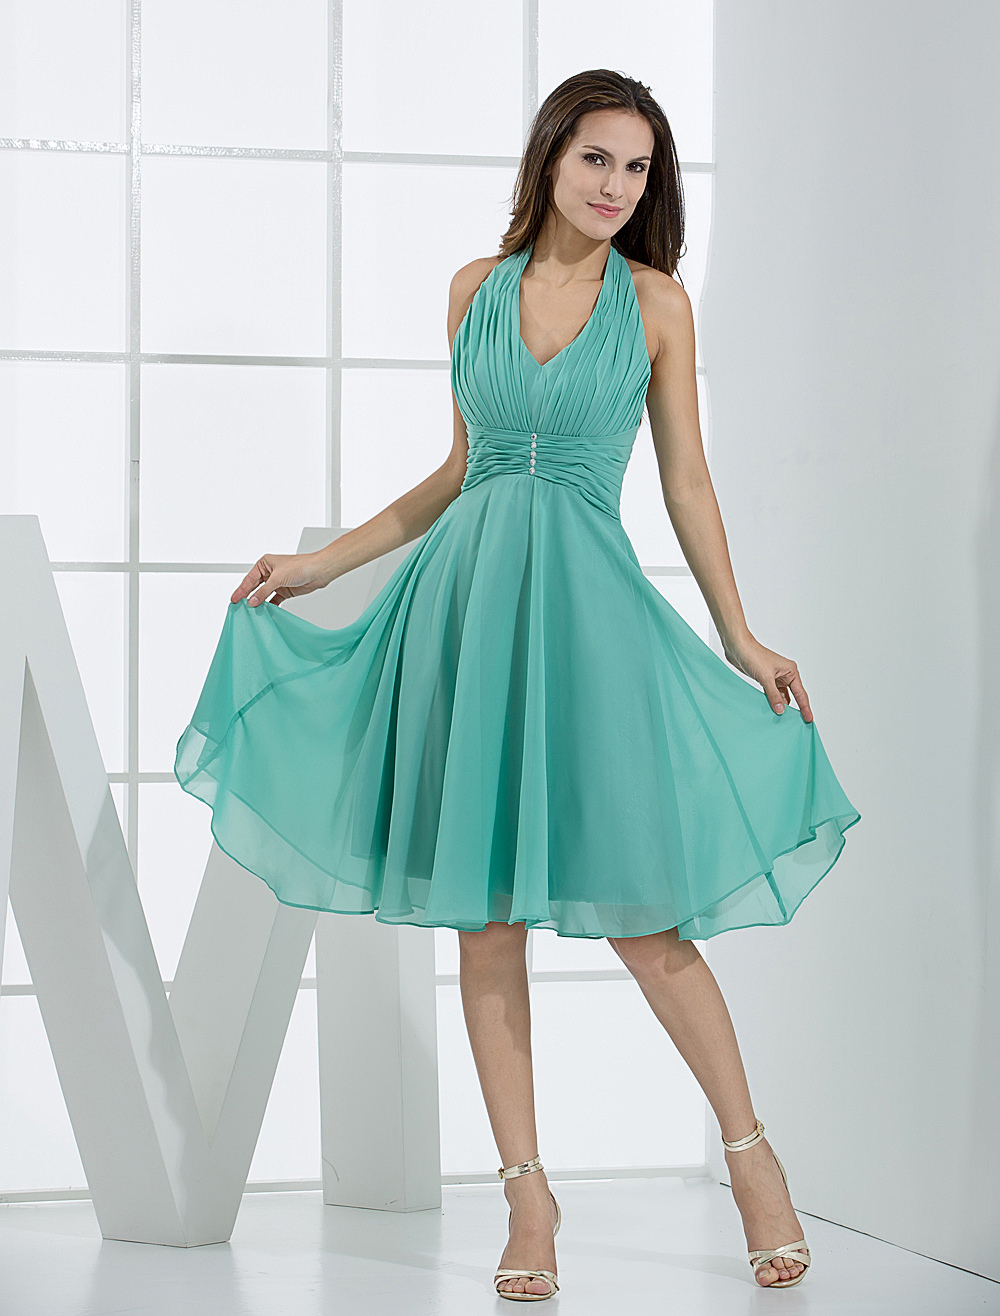 Vintage halter v neck chiffon bridesmaid dress milanoo ombrellifo Image collections